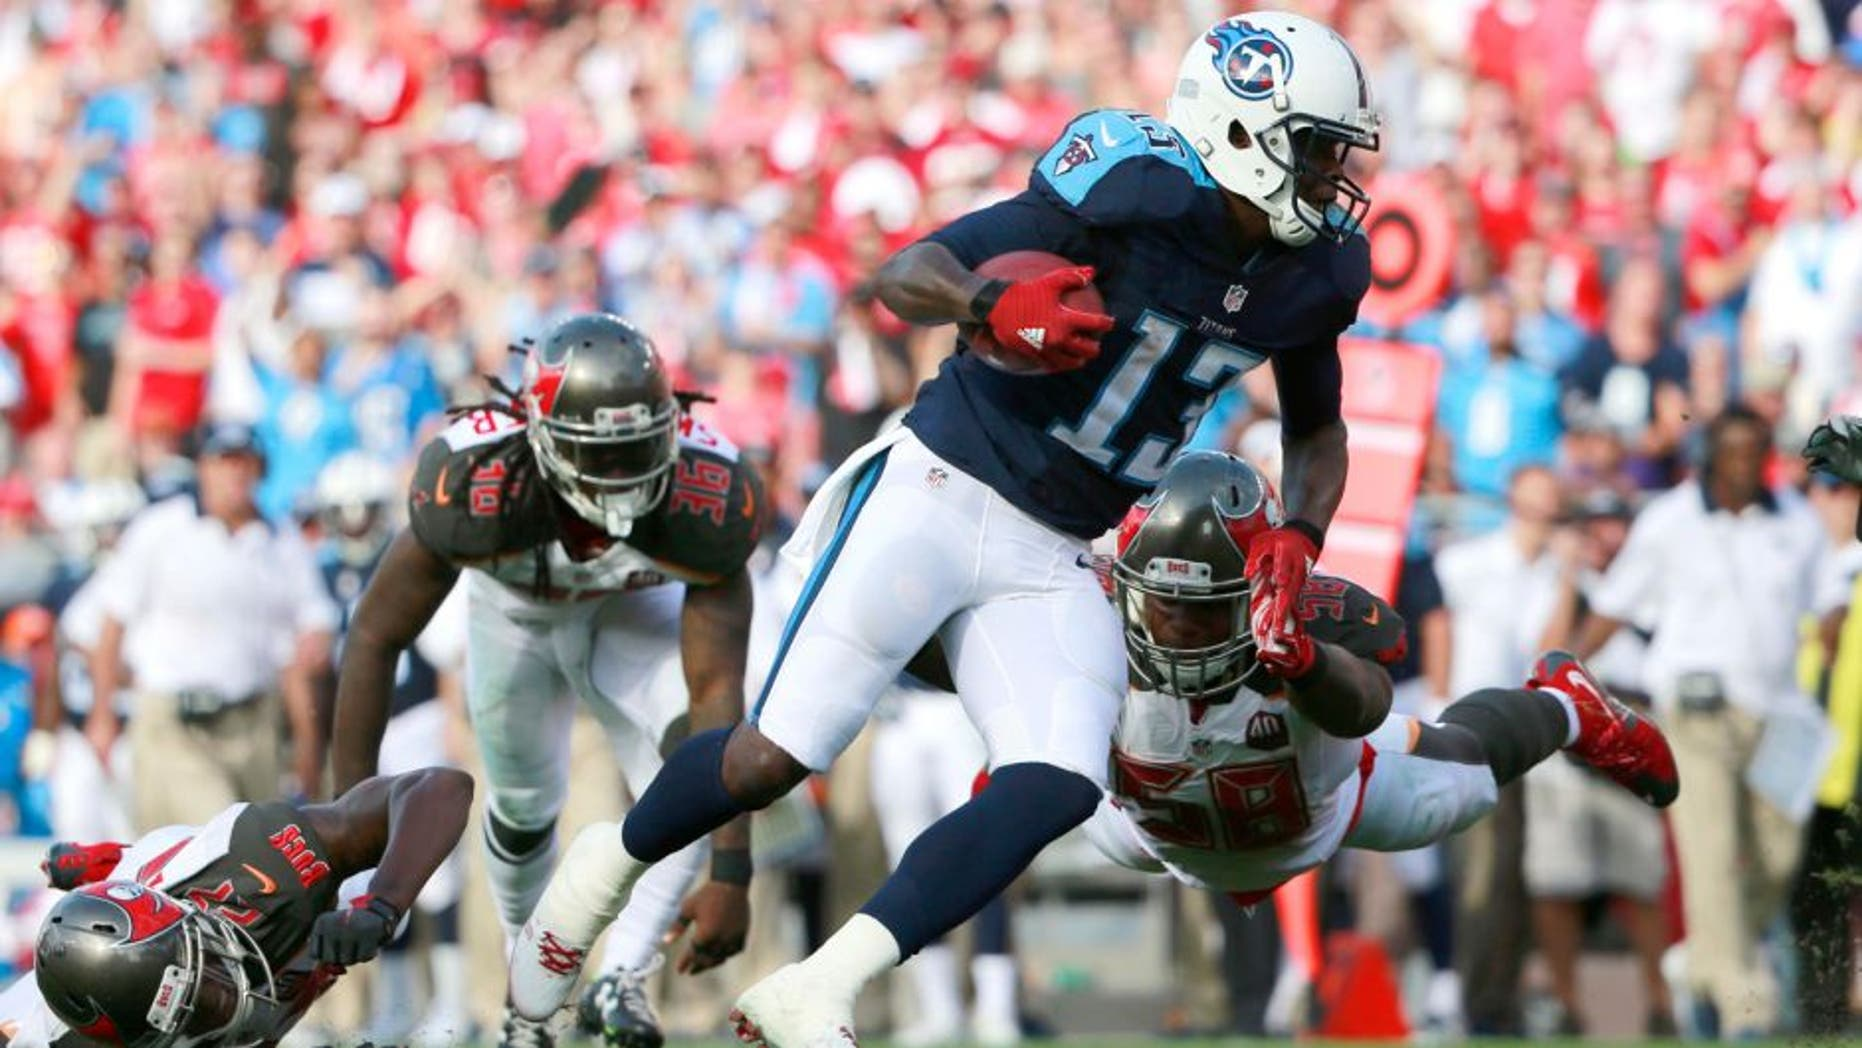 Sep 13, 2015; Tampa, FL, USA; Tennessee Titans wide receiver Kendall Wright (13) runs past Tampa Bay Buccaneers outside linebacker Kwon Alexander (58) during the first half at Raymond James Stadium. Mandatory Credit: Kim Klement-USA TODAY Sports